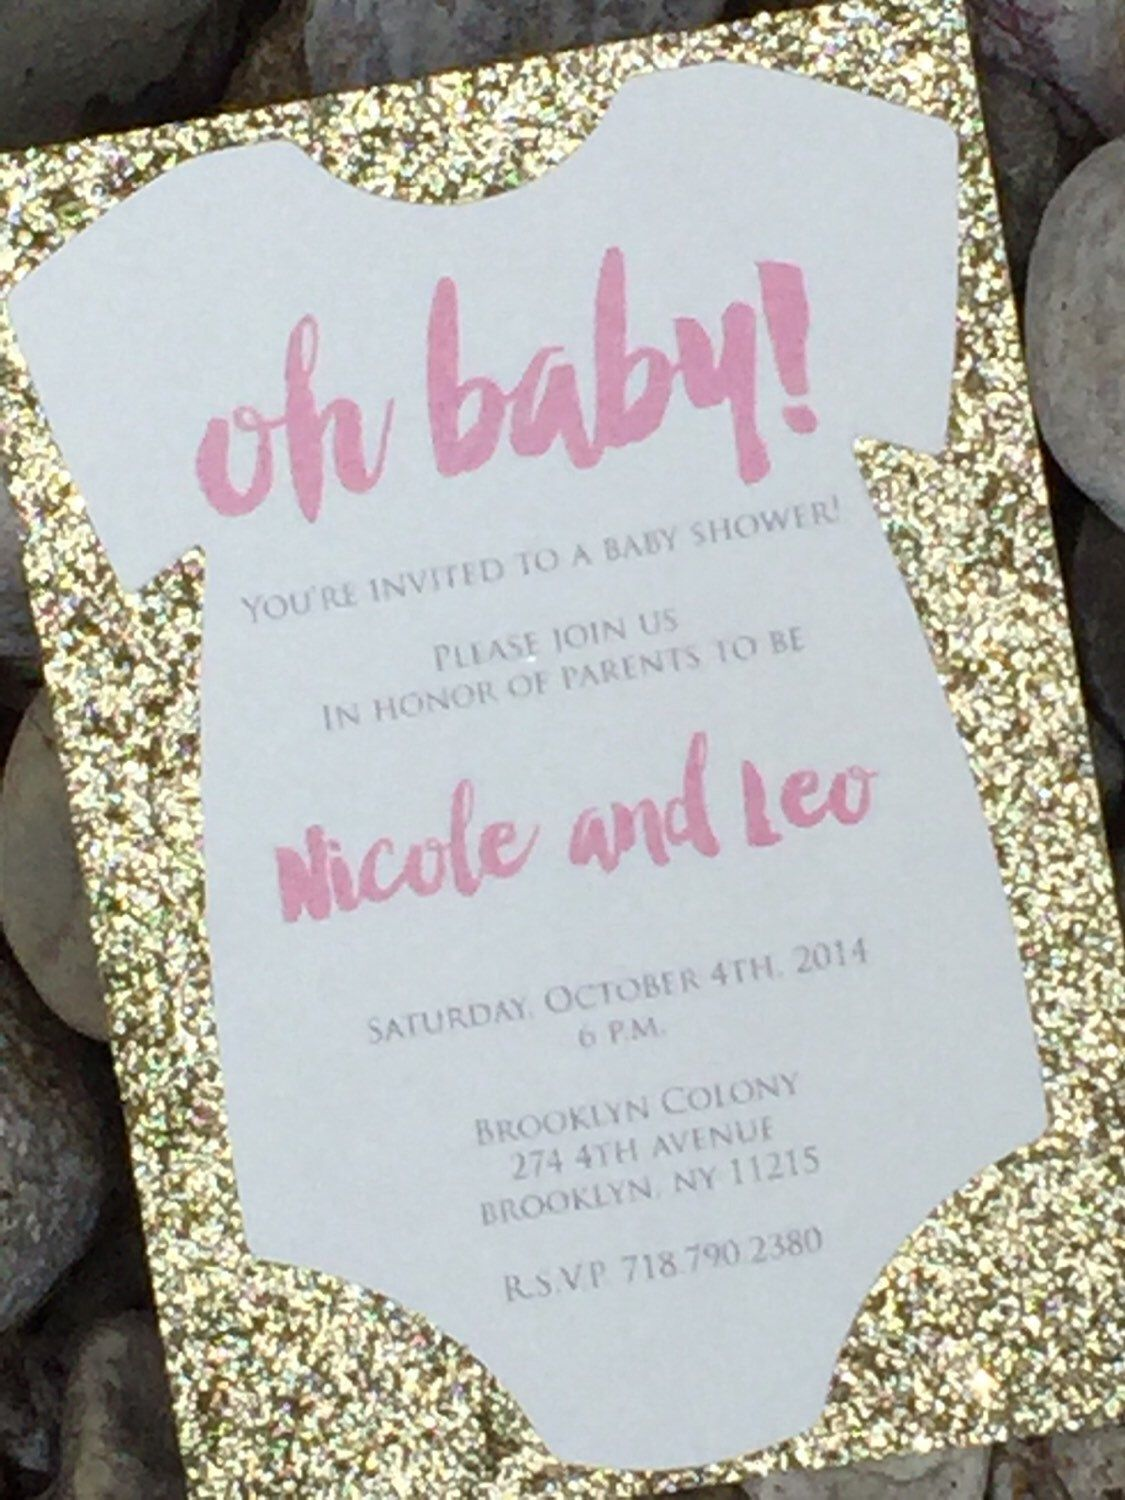 Baby Shower Invitation - 25 Glitter Baby Shower Invitations, Baby ...